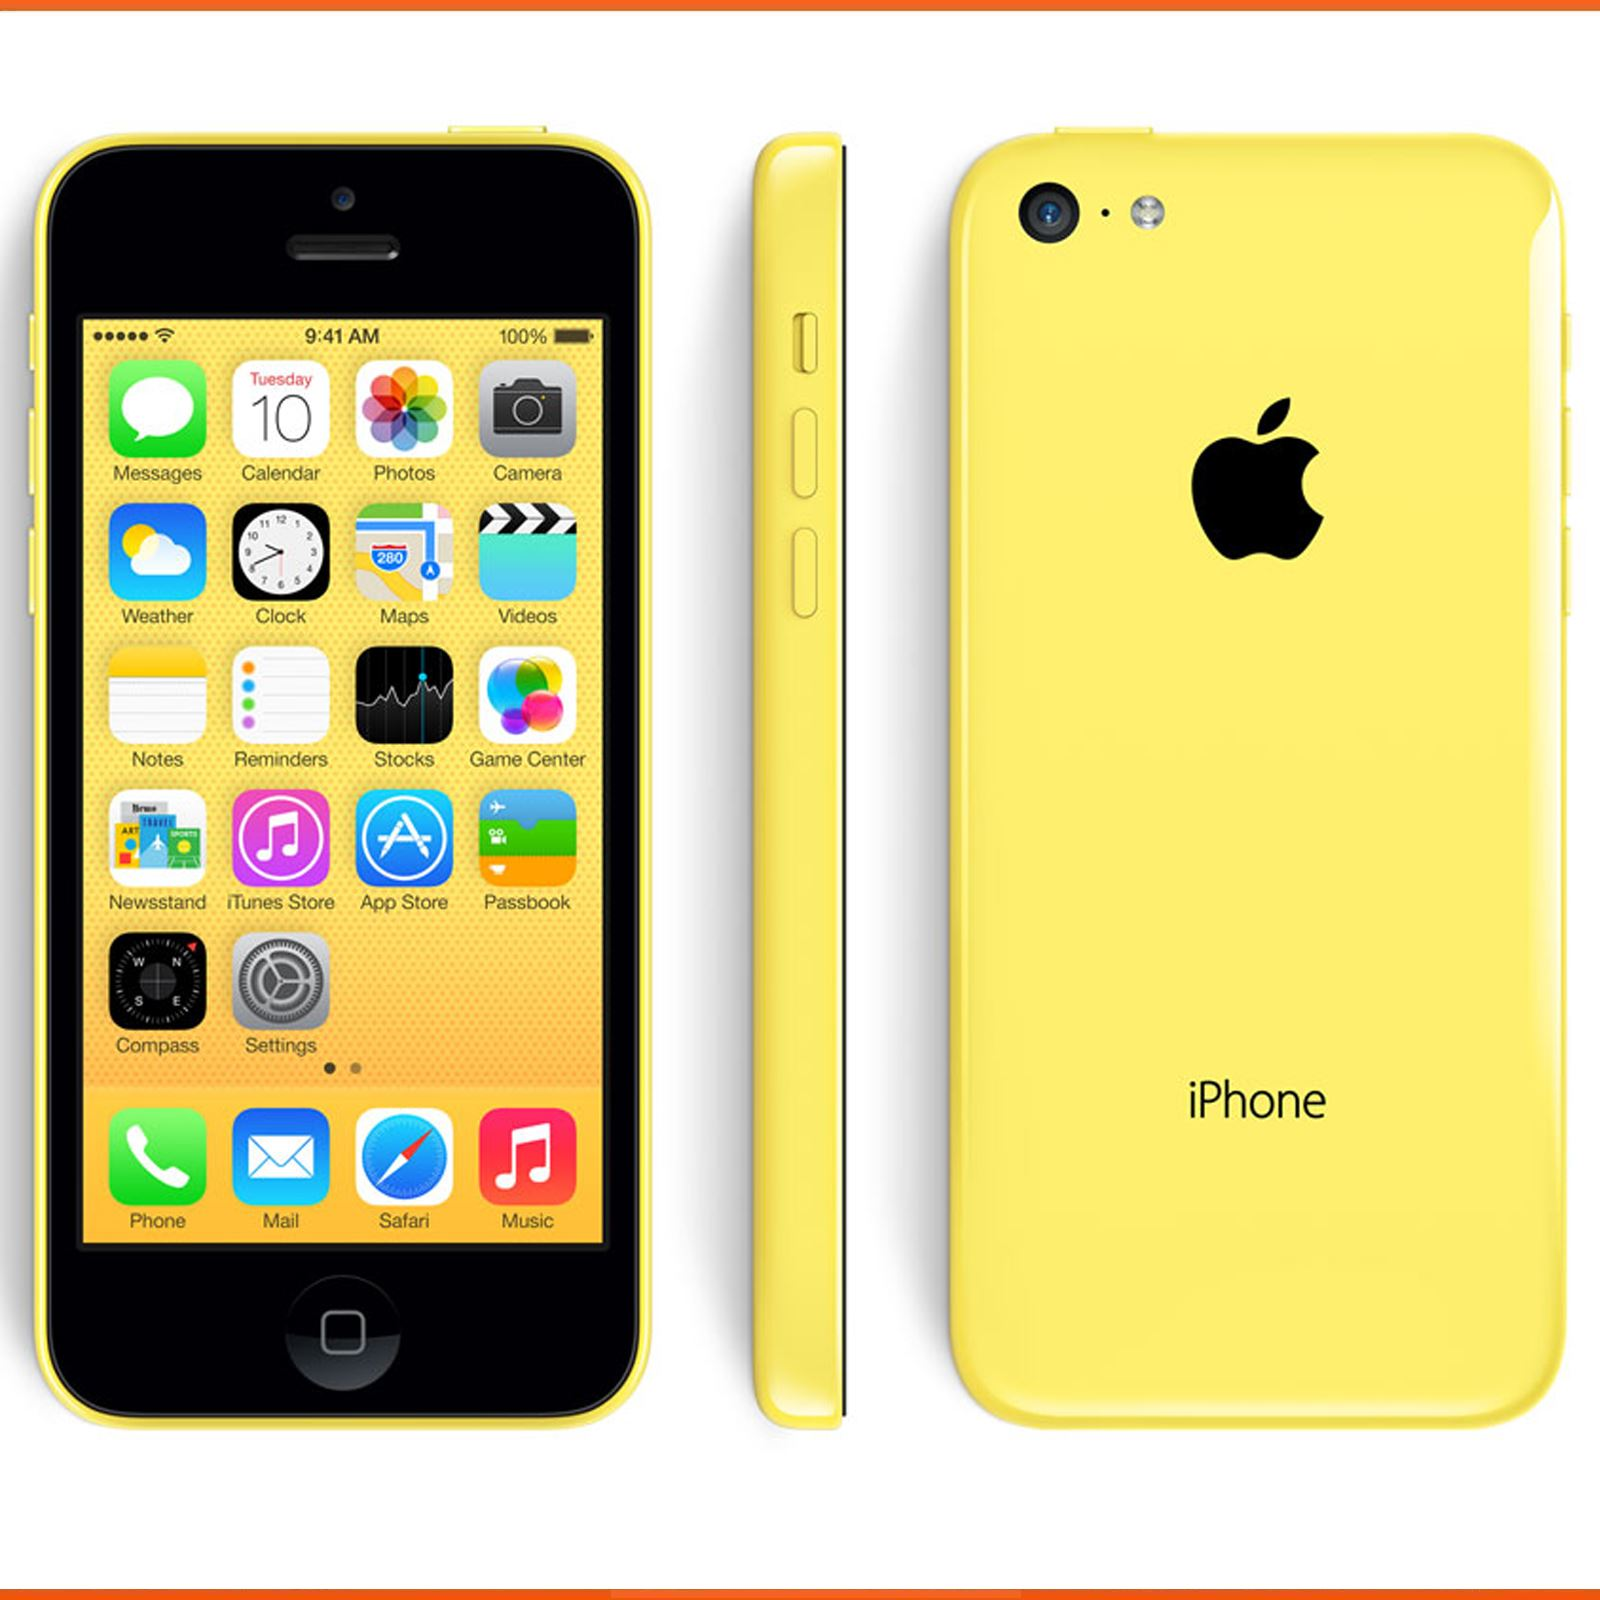 apple iphone 5c 8gb 16gb 32gb blue green white yellow. Black Bedroom Furniture Sets. Home Design Ideas